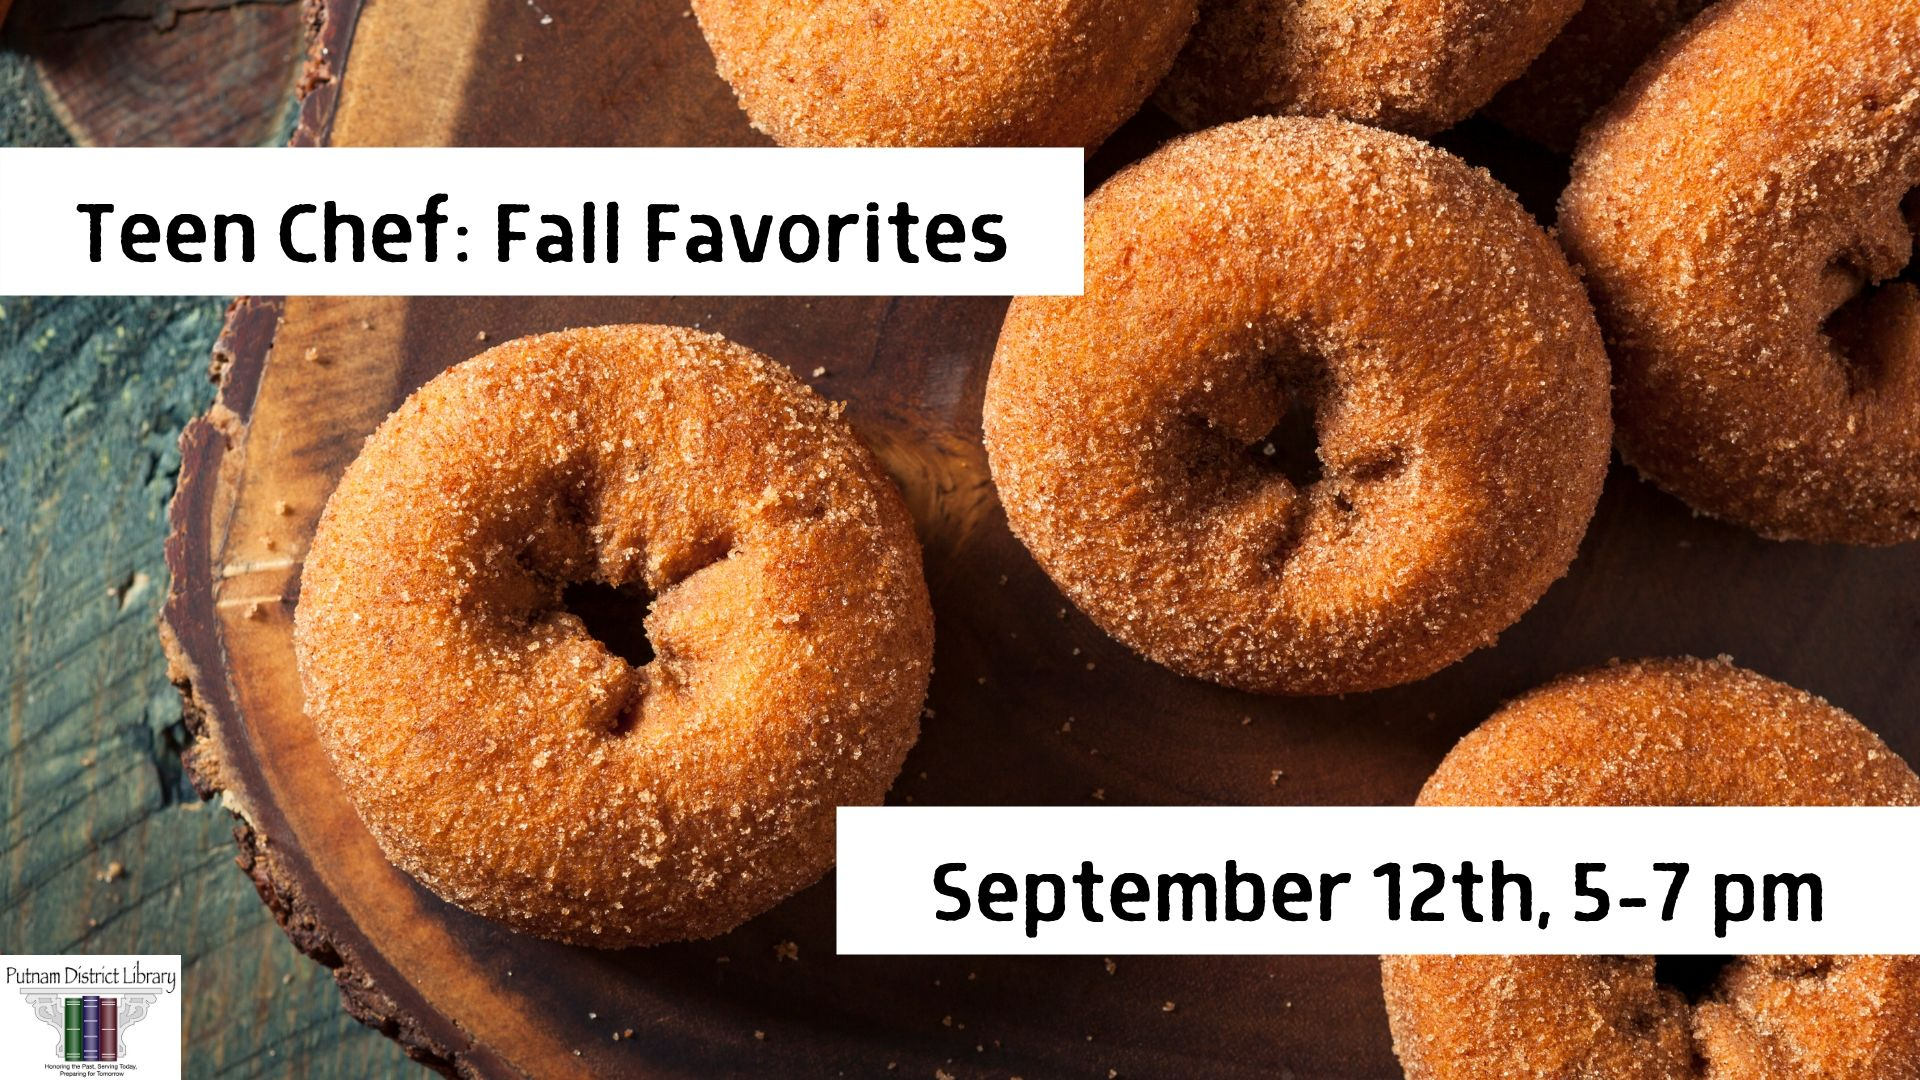 Teen Chef: Fall Favorites